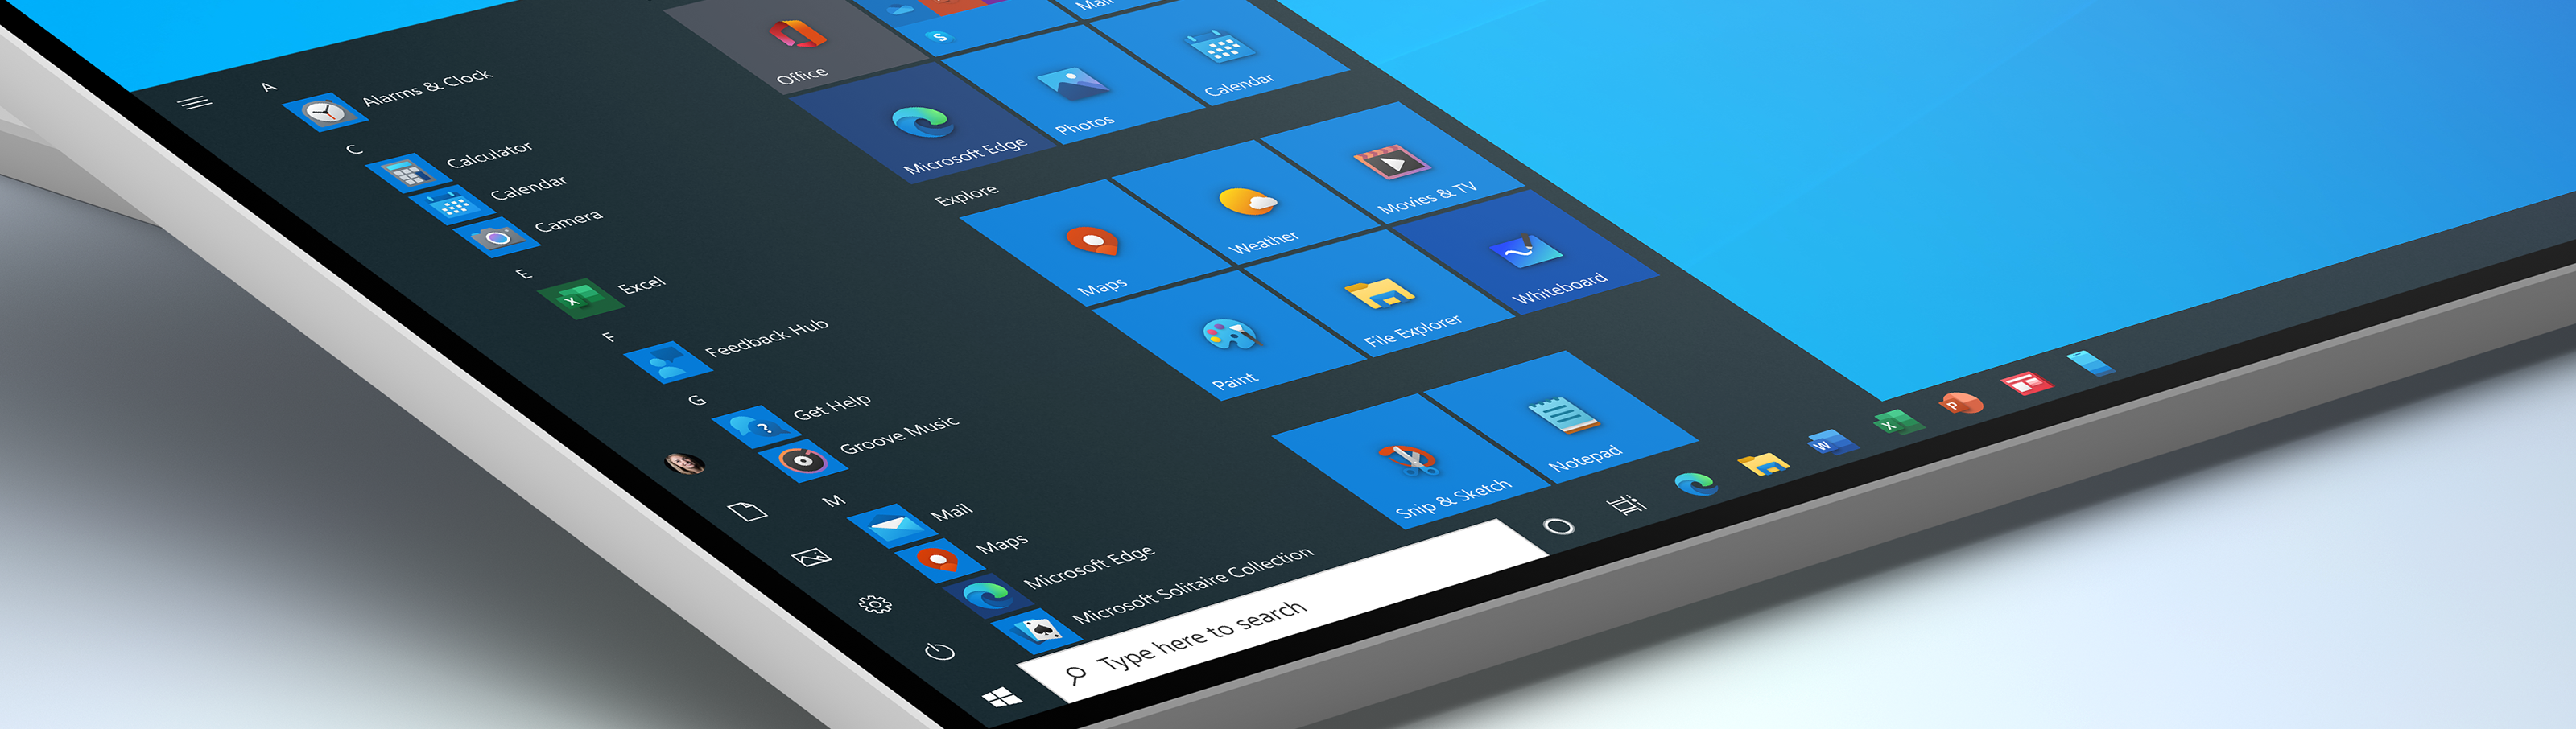 Windows 10 Start menu with Fluent iconography